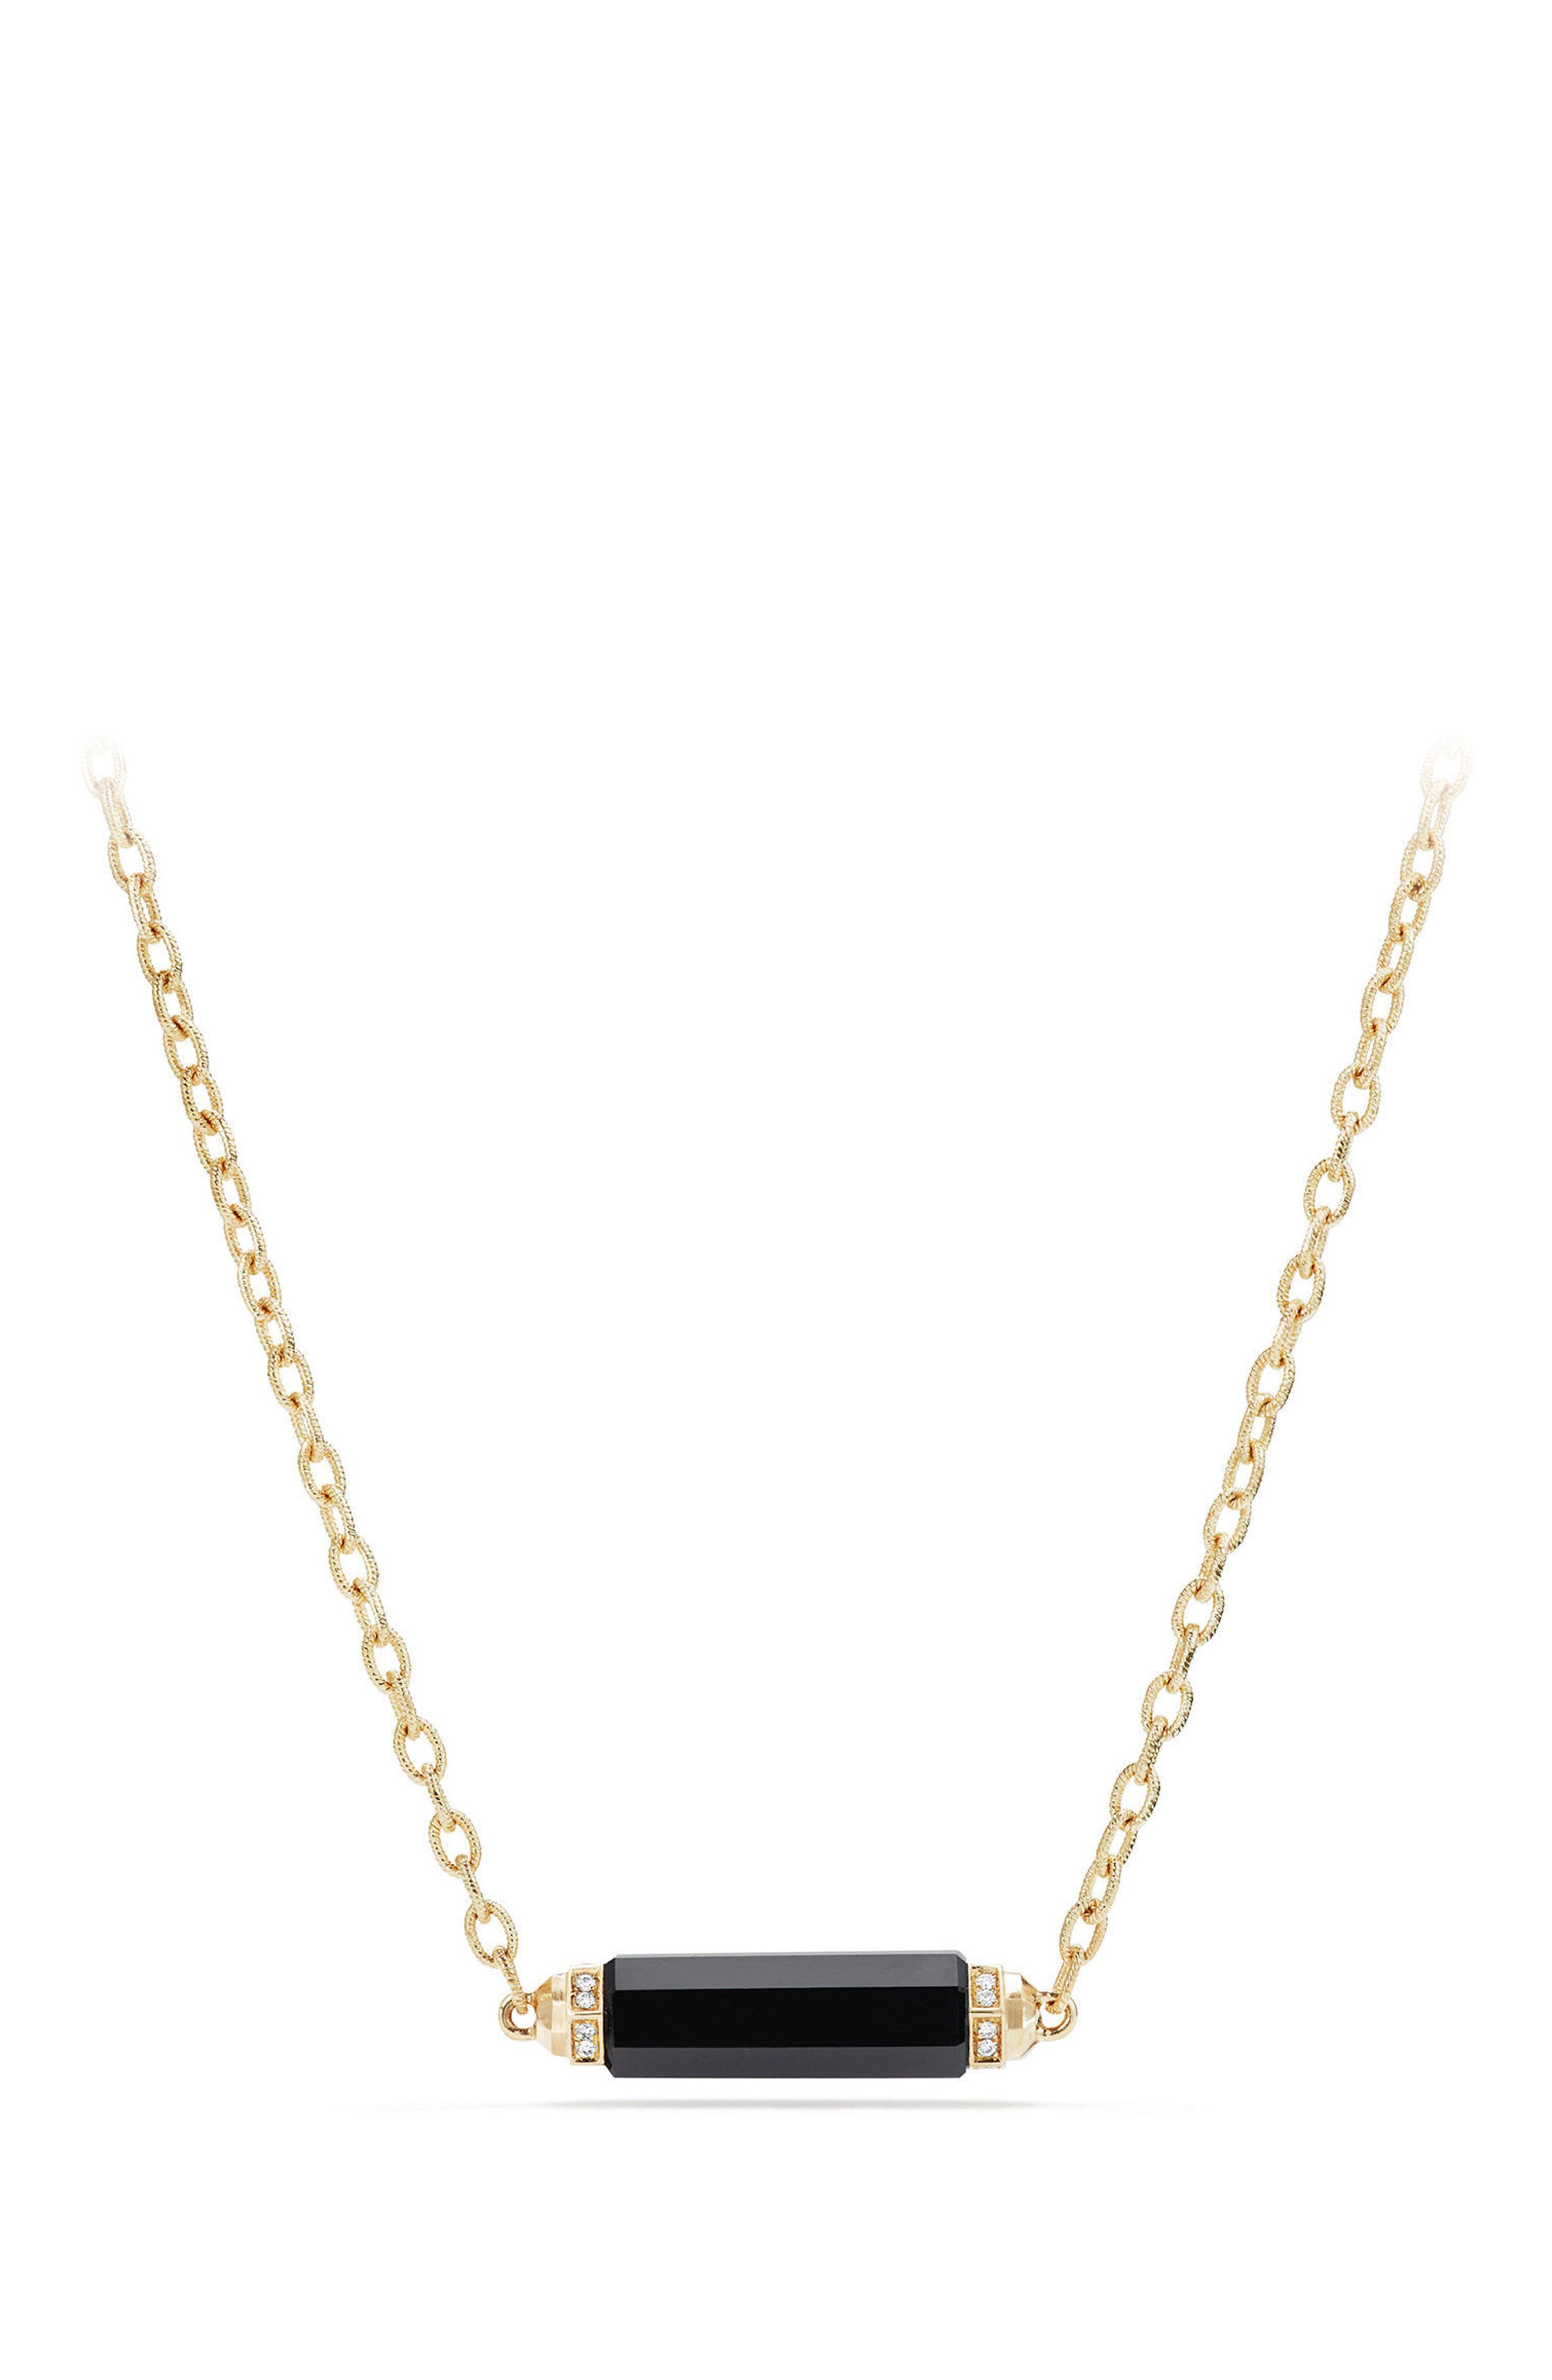 Barrels Single Station Necklace with Diamonds in 18K Gold,                         Main,                         color, Black Onyx?